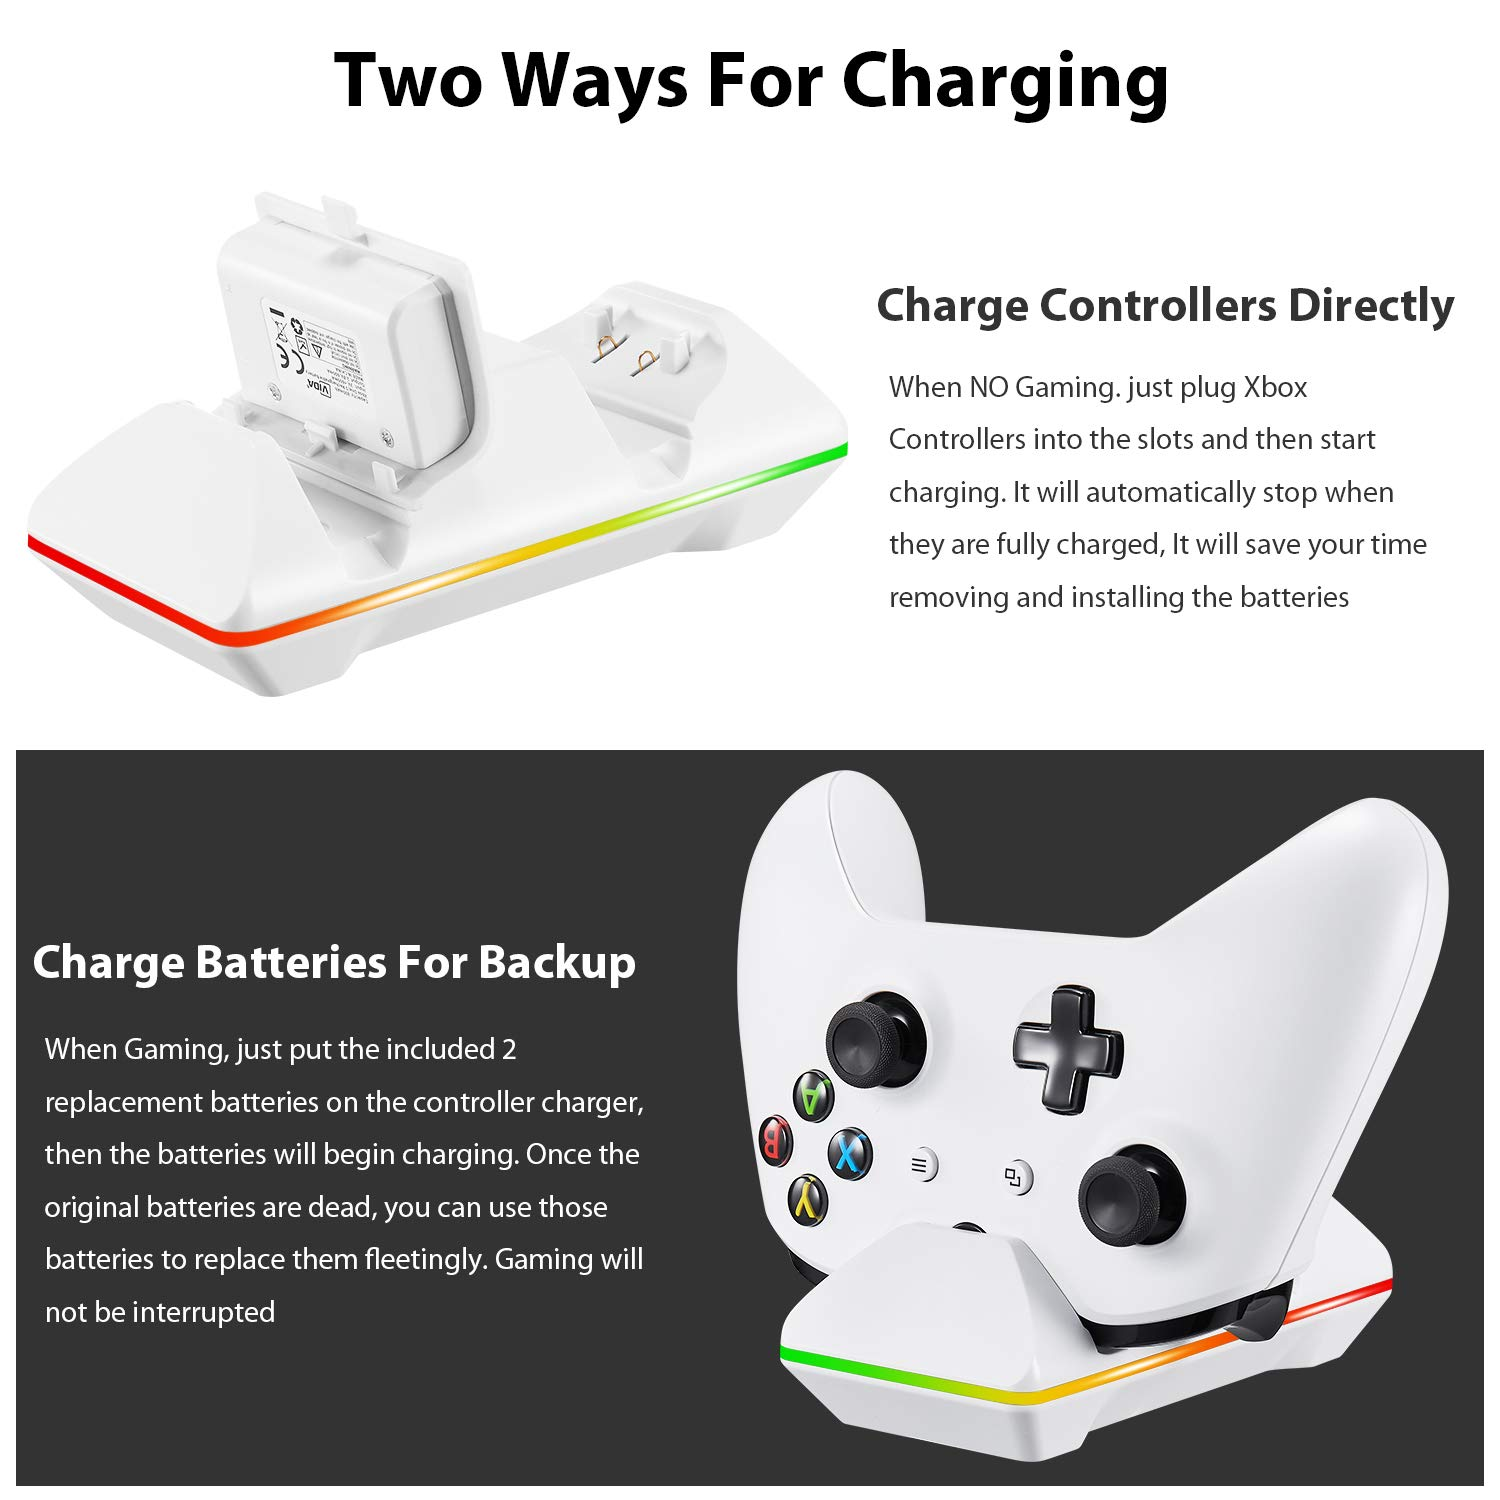 Xbox One Controller Charger, CVIDA Dual Xbox One/One S/One Elite Charging Station with 2 x 800mAh Rechargeable Battery Packs for Two Wireless Controllers Charge Kit- White by CVIDA (Image #2)